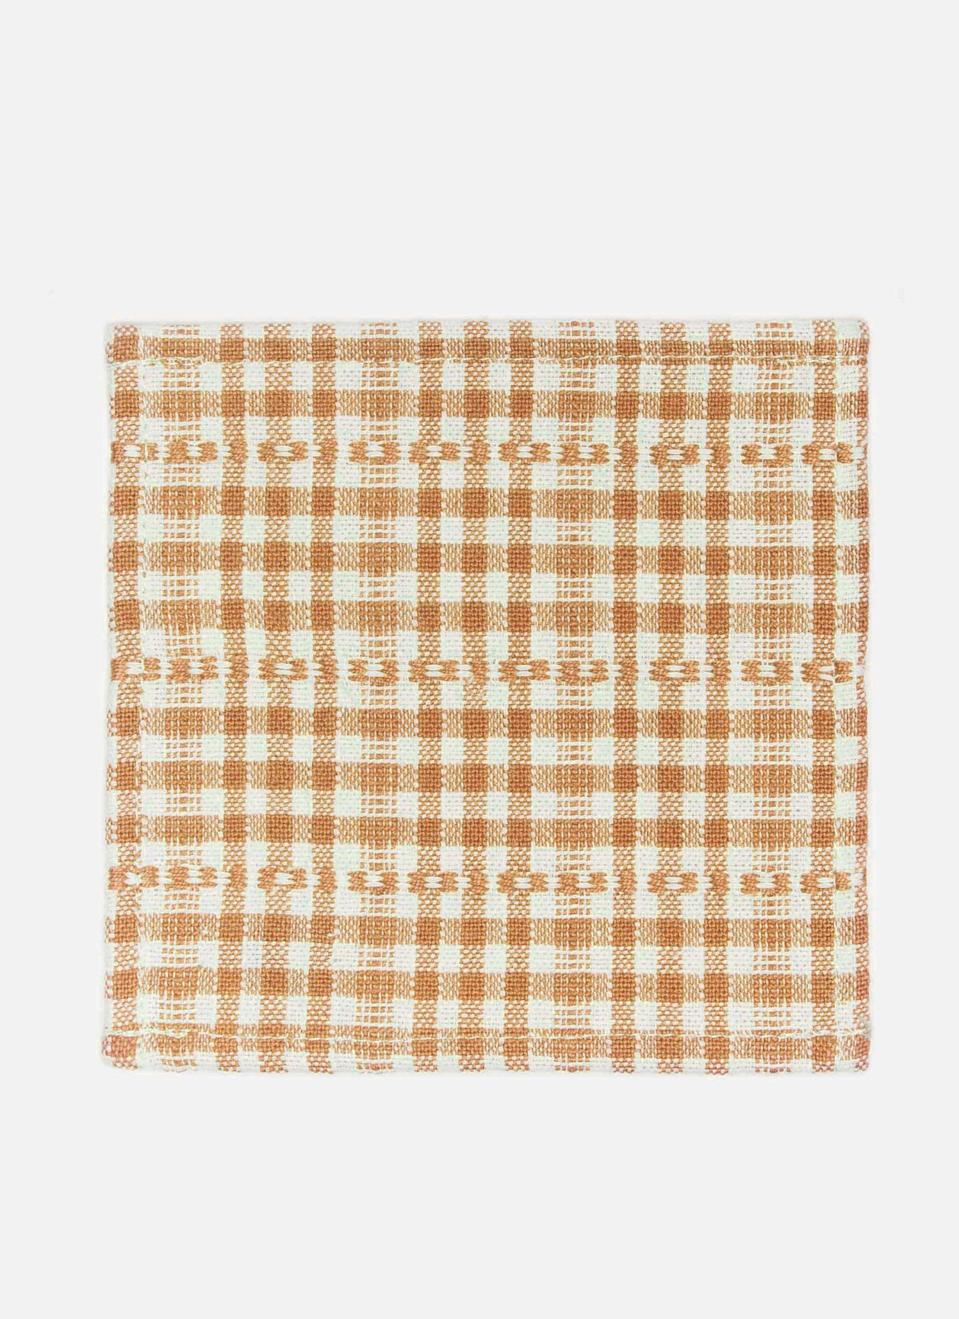 """<p><strong>Heather Taylor Home</strong></p><p>heathertaylorhome.com</p><p><strong>$18.00</strong></p><p><a href=""""https://heathertaylorhome.com/shop/soho-goldenrod-cocktail-napkins/"""" rel=""""nofollow noopener"""" target=""""_blank"""" data-ylk=""""slk:Discover"""" class=""""link rapid-noclick-resp"""">Discover</a></p><p><a href=""""https://heathertaylorhome.com/"""" rel=""""nofollow noopener"""" target=""""_blank"""" data-ylk=""""slk:Heather Taylor Home"""" class=""""link rapid-noclick-resp"""">Heather Taylor Home</a> offers a variety of cocktail napkins, like these handwoven of cotton in Mexico.</p>"""